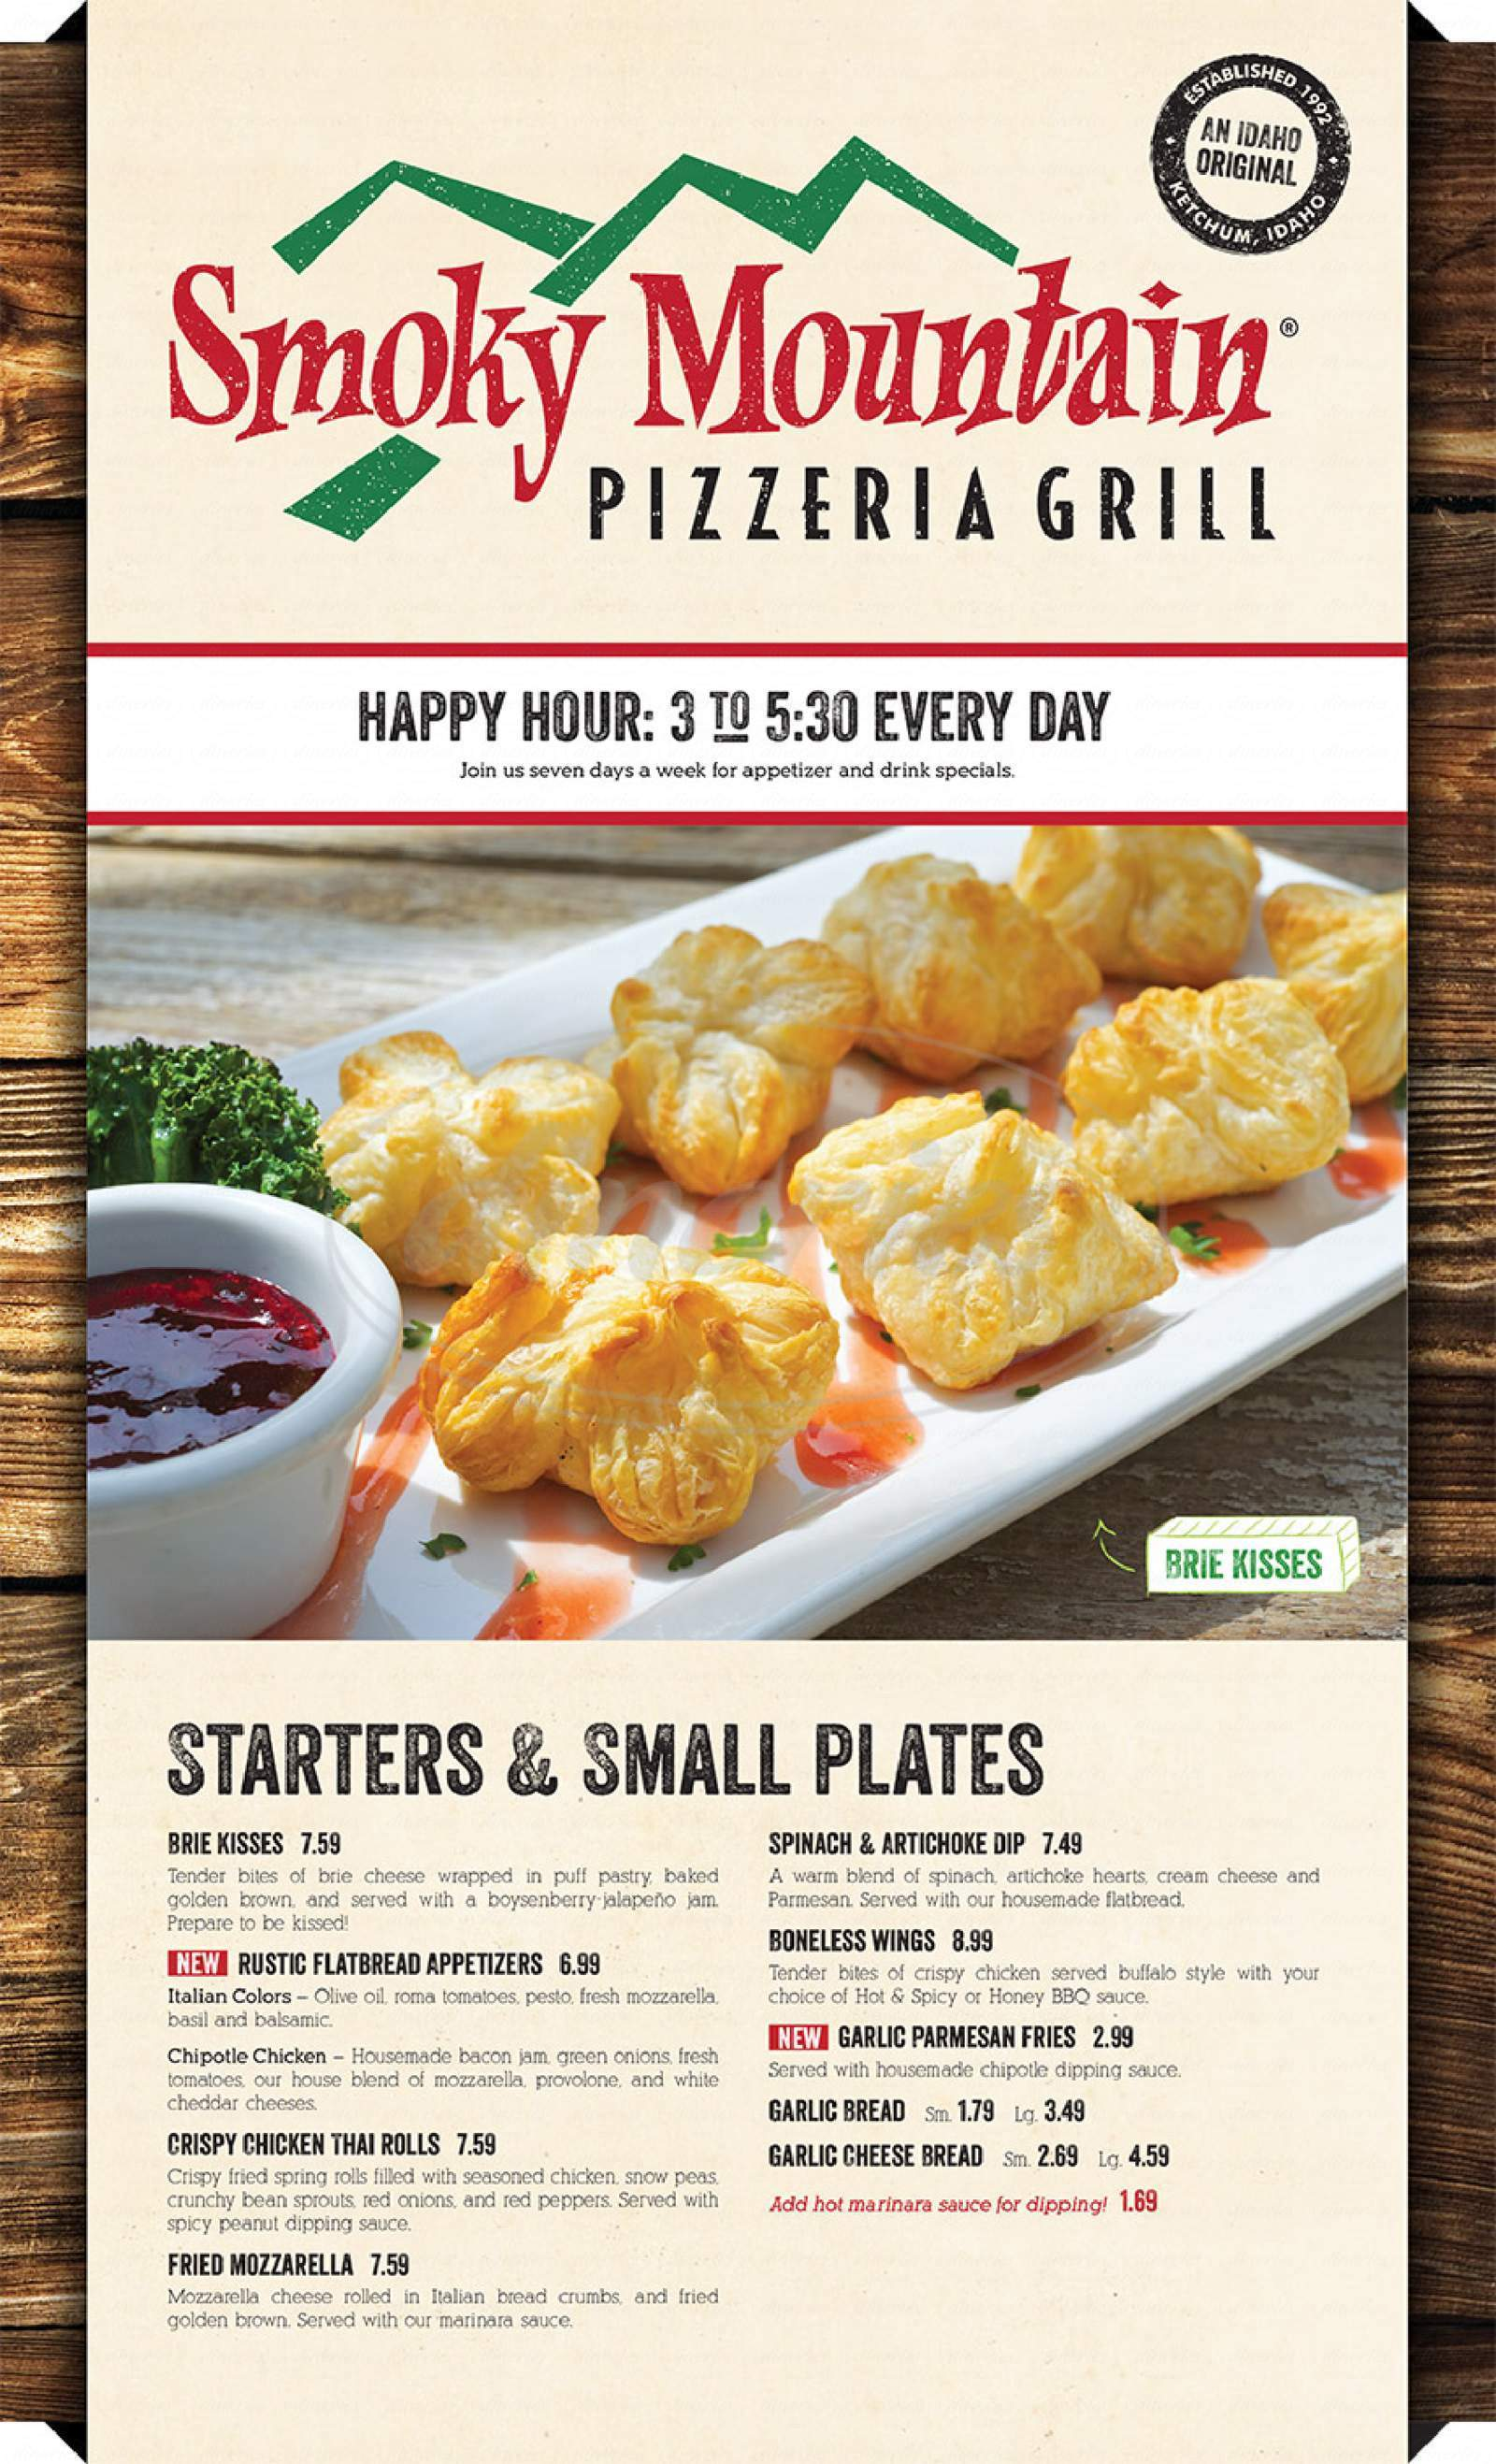 menu for Smoky Mountain Pizzeria Grill